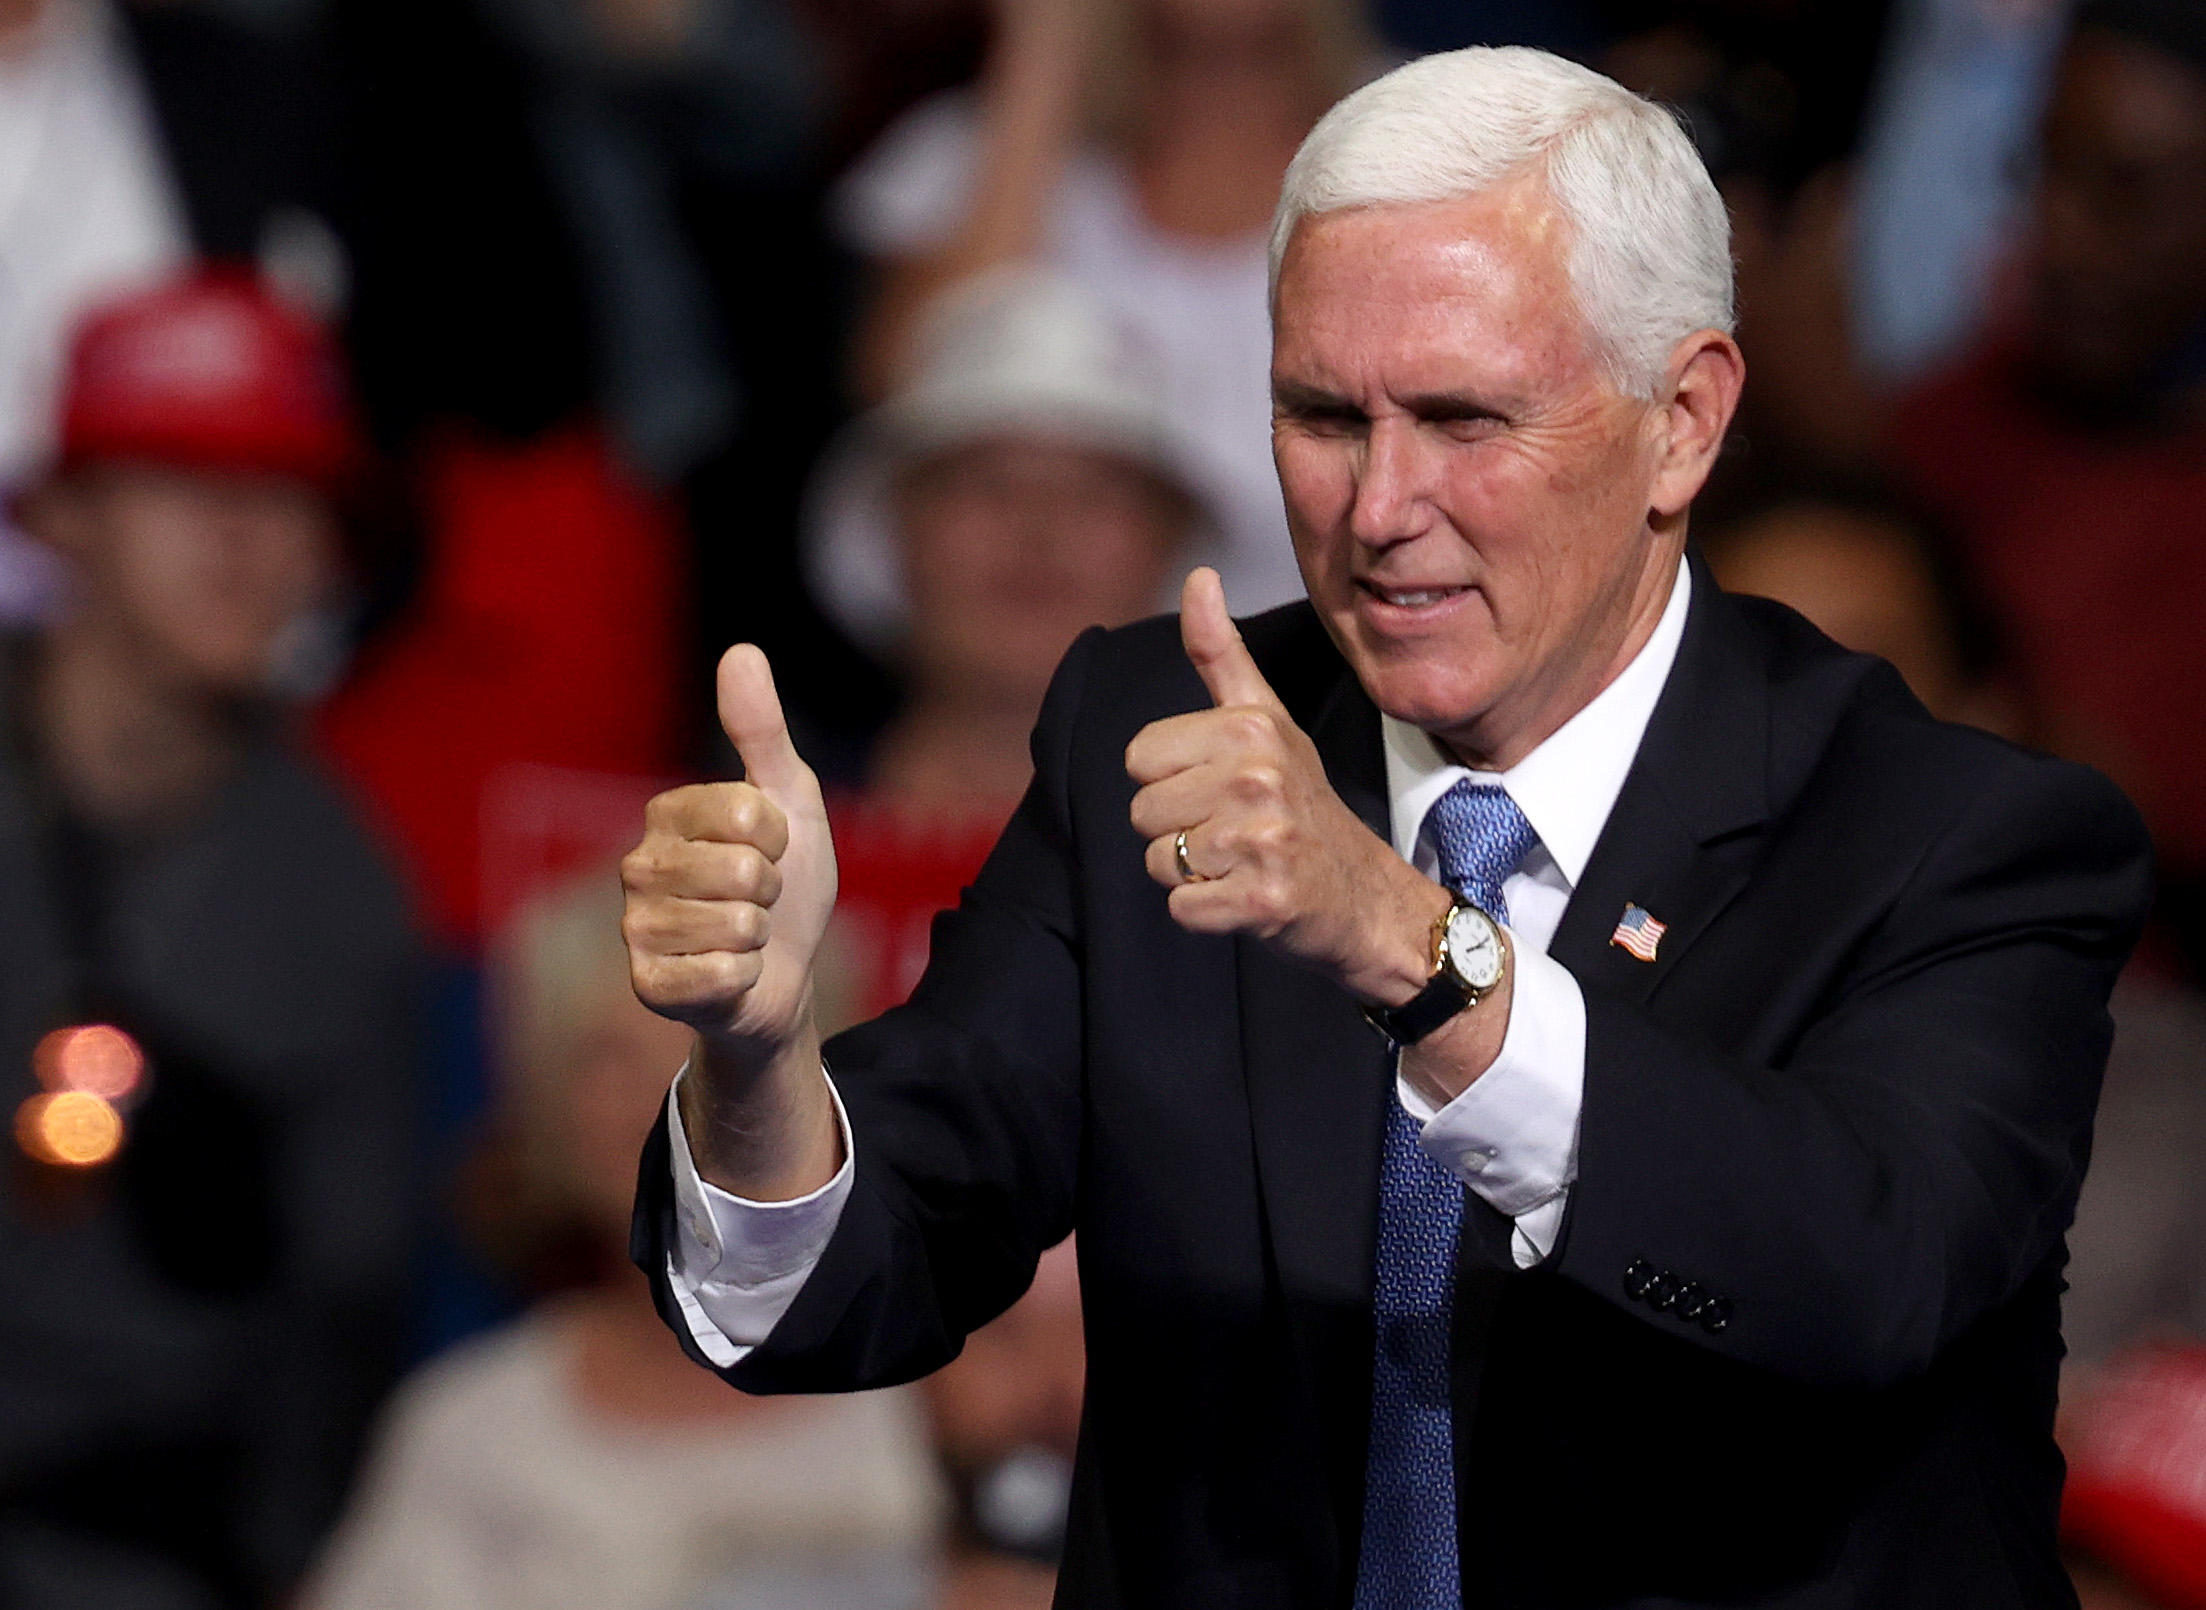 Pence predicts COVID-19 vaccine before end of 2020—but he also once said pandemic may end by Memorial Day